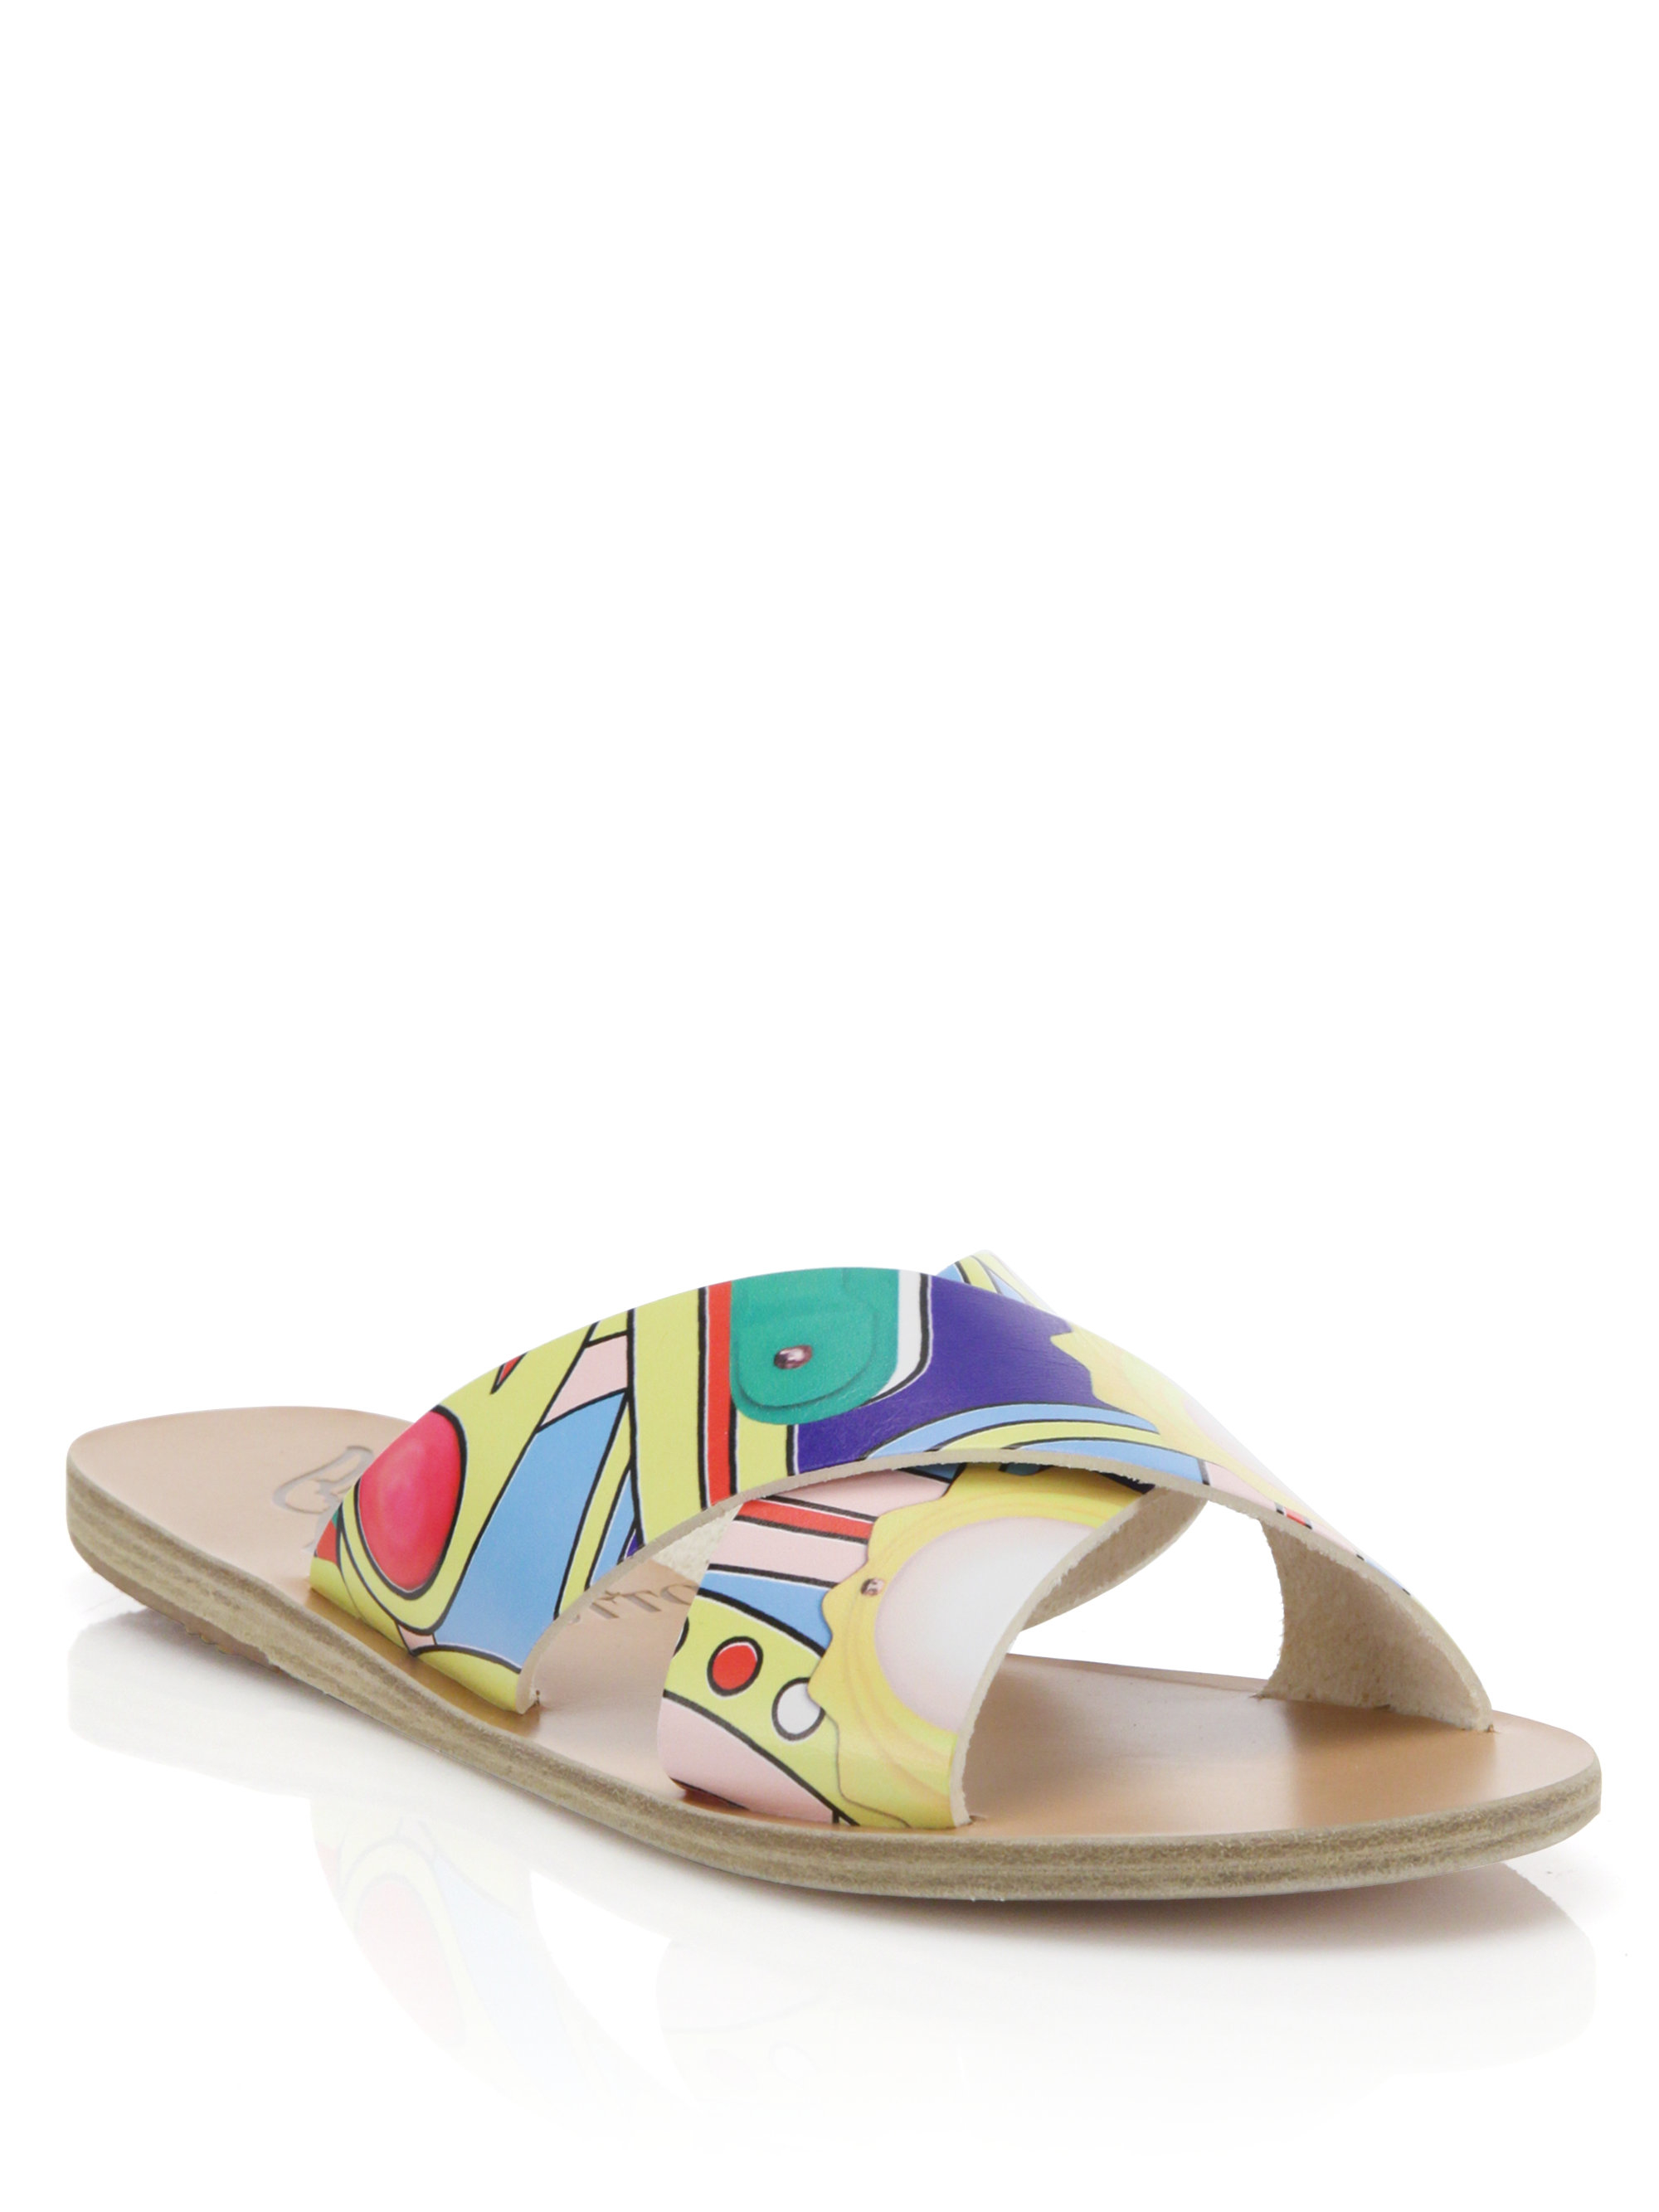 for sale footlocker clearance pay with visa Ancient Greek Sandals x Peter Pilotto Thais Crossover Sandals buy cheap tumblr quality original 5qAZu